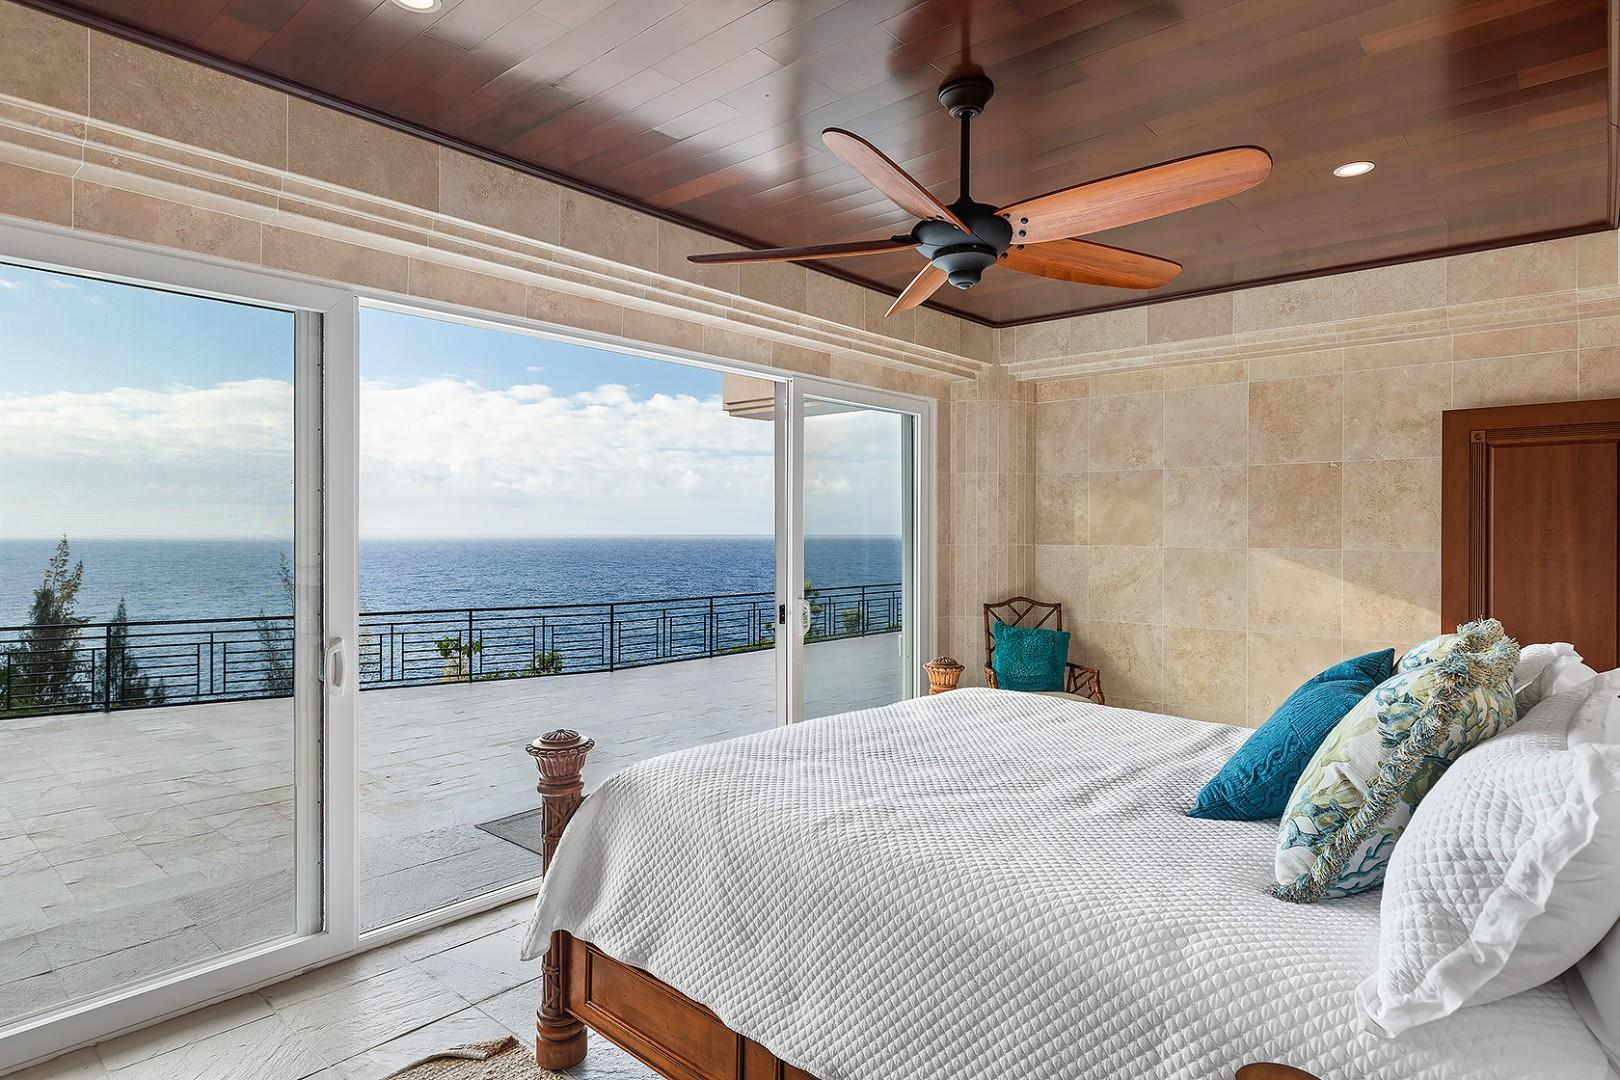 Wake up to the ocean